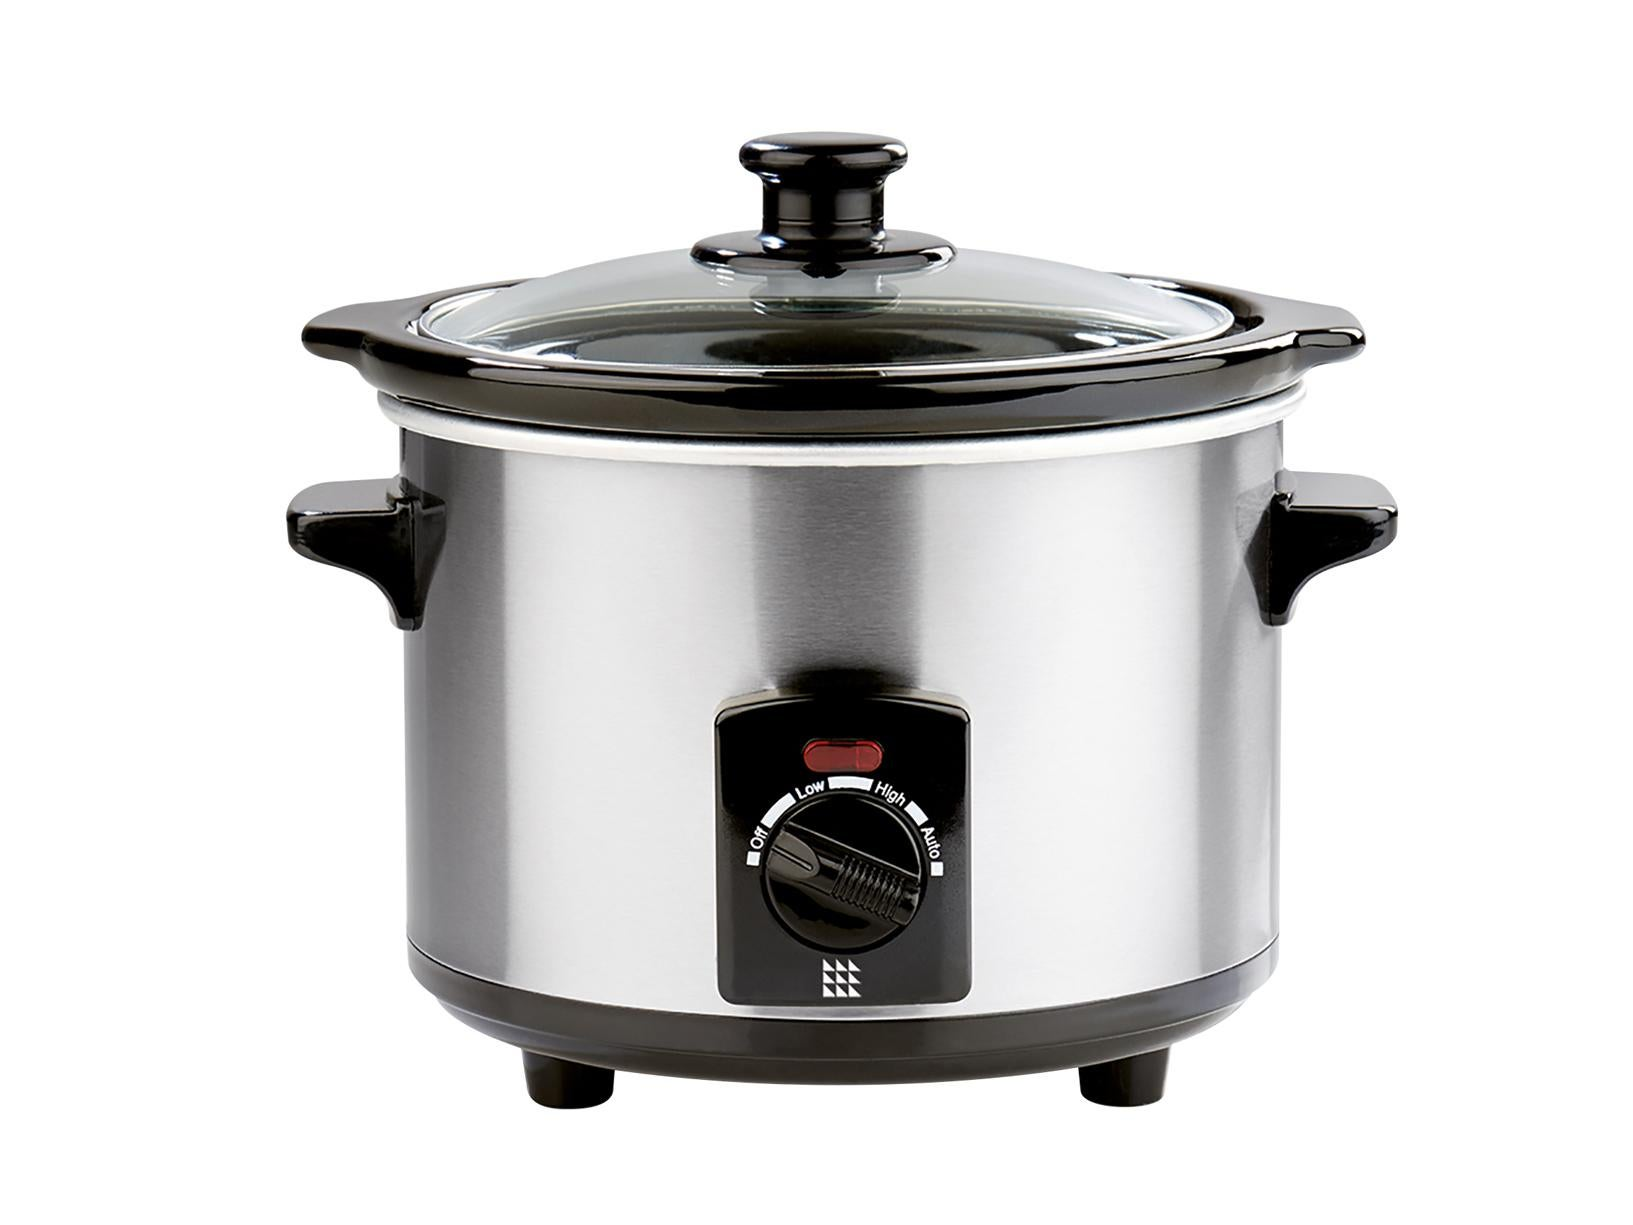 Watch 8 Best Slow Cookers You Can Buy On Amazon For Under 100 video